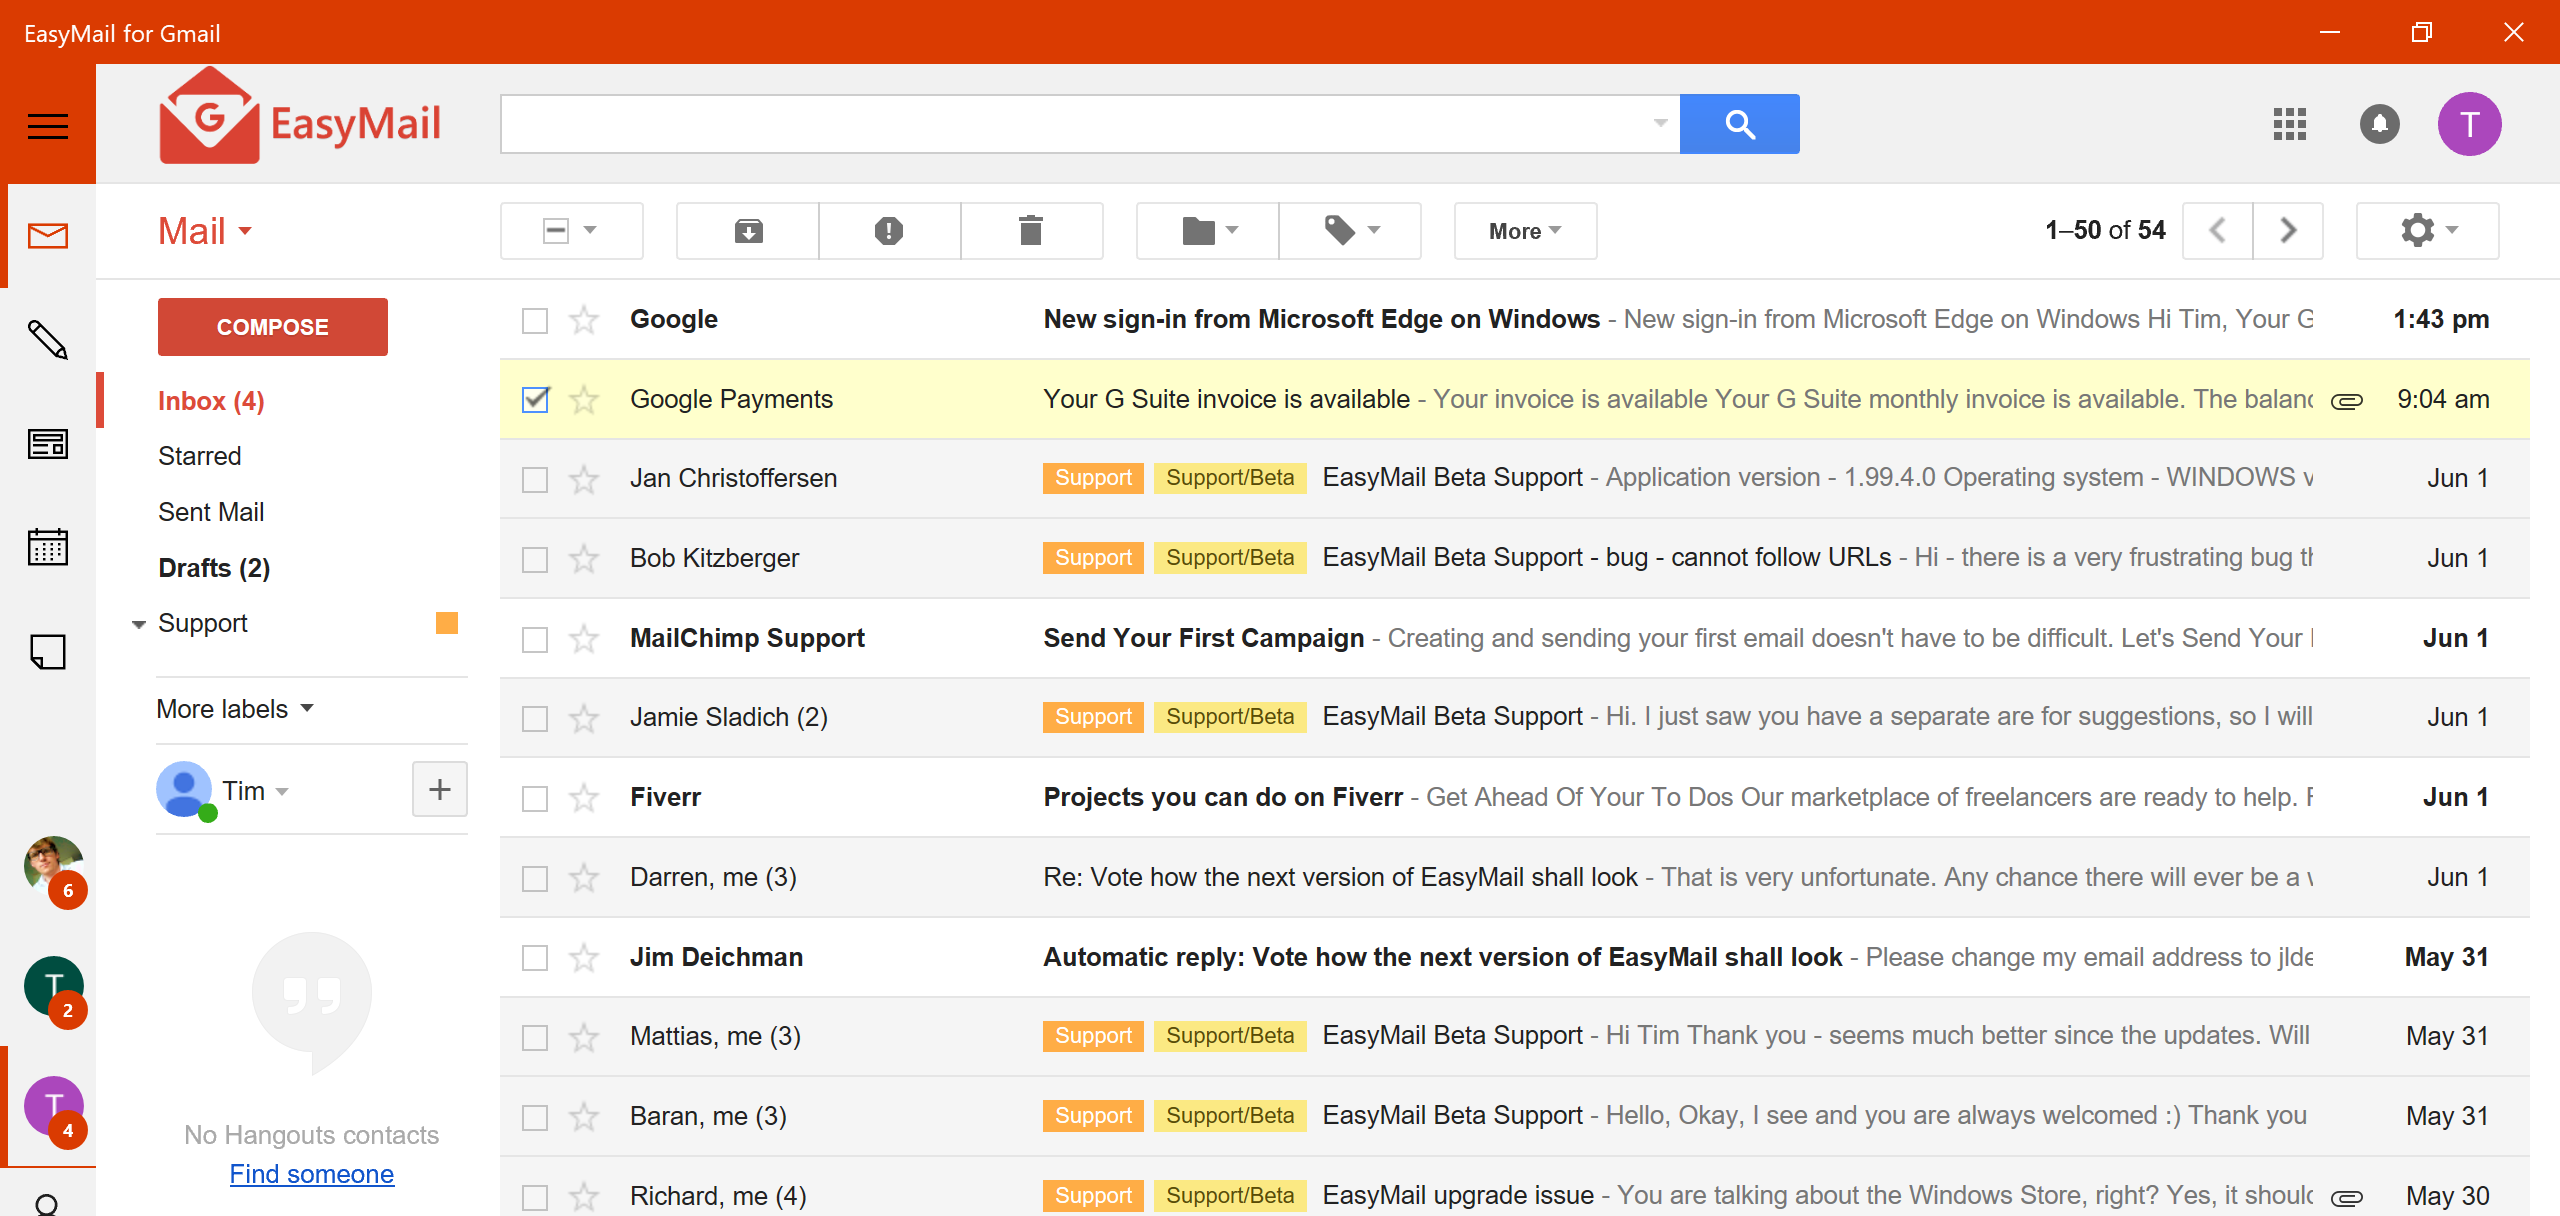 Gmail: Gmail Made Easy: EasyMail For Gmail